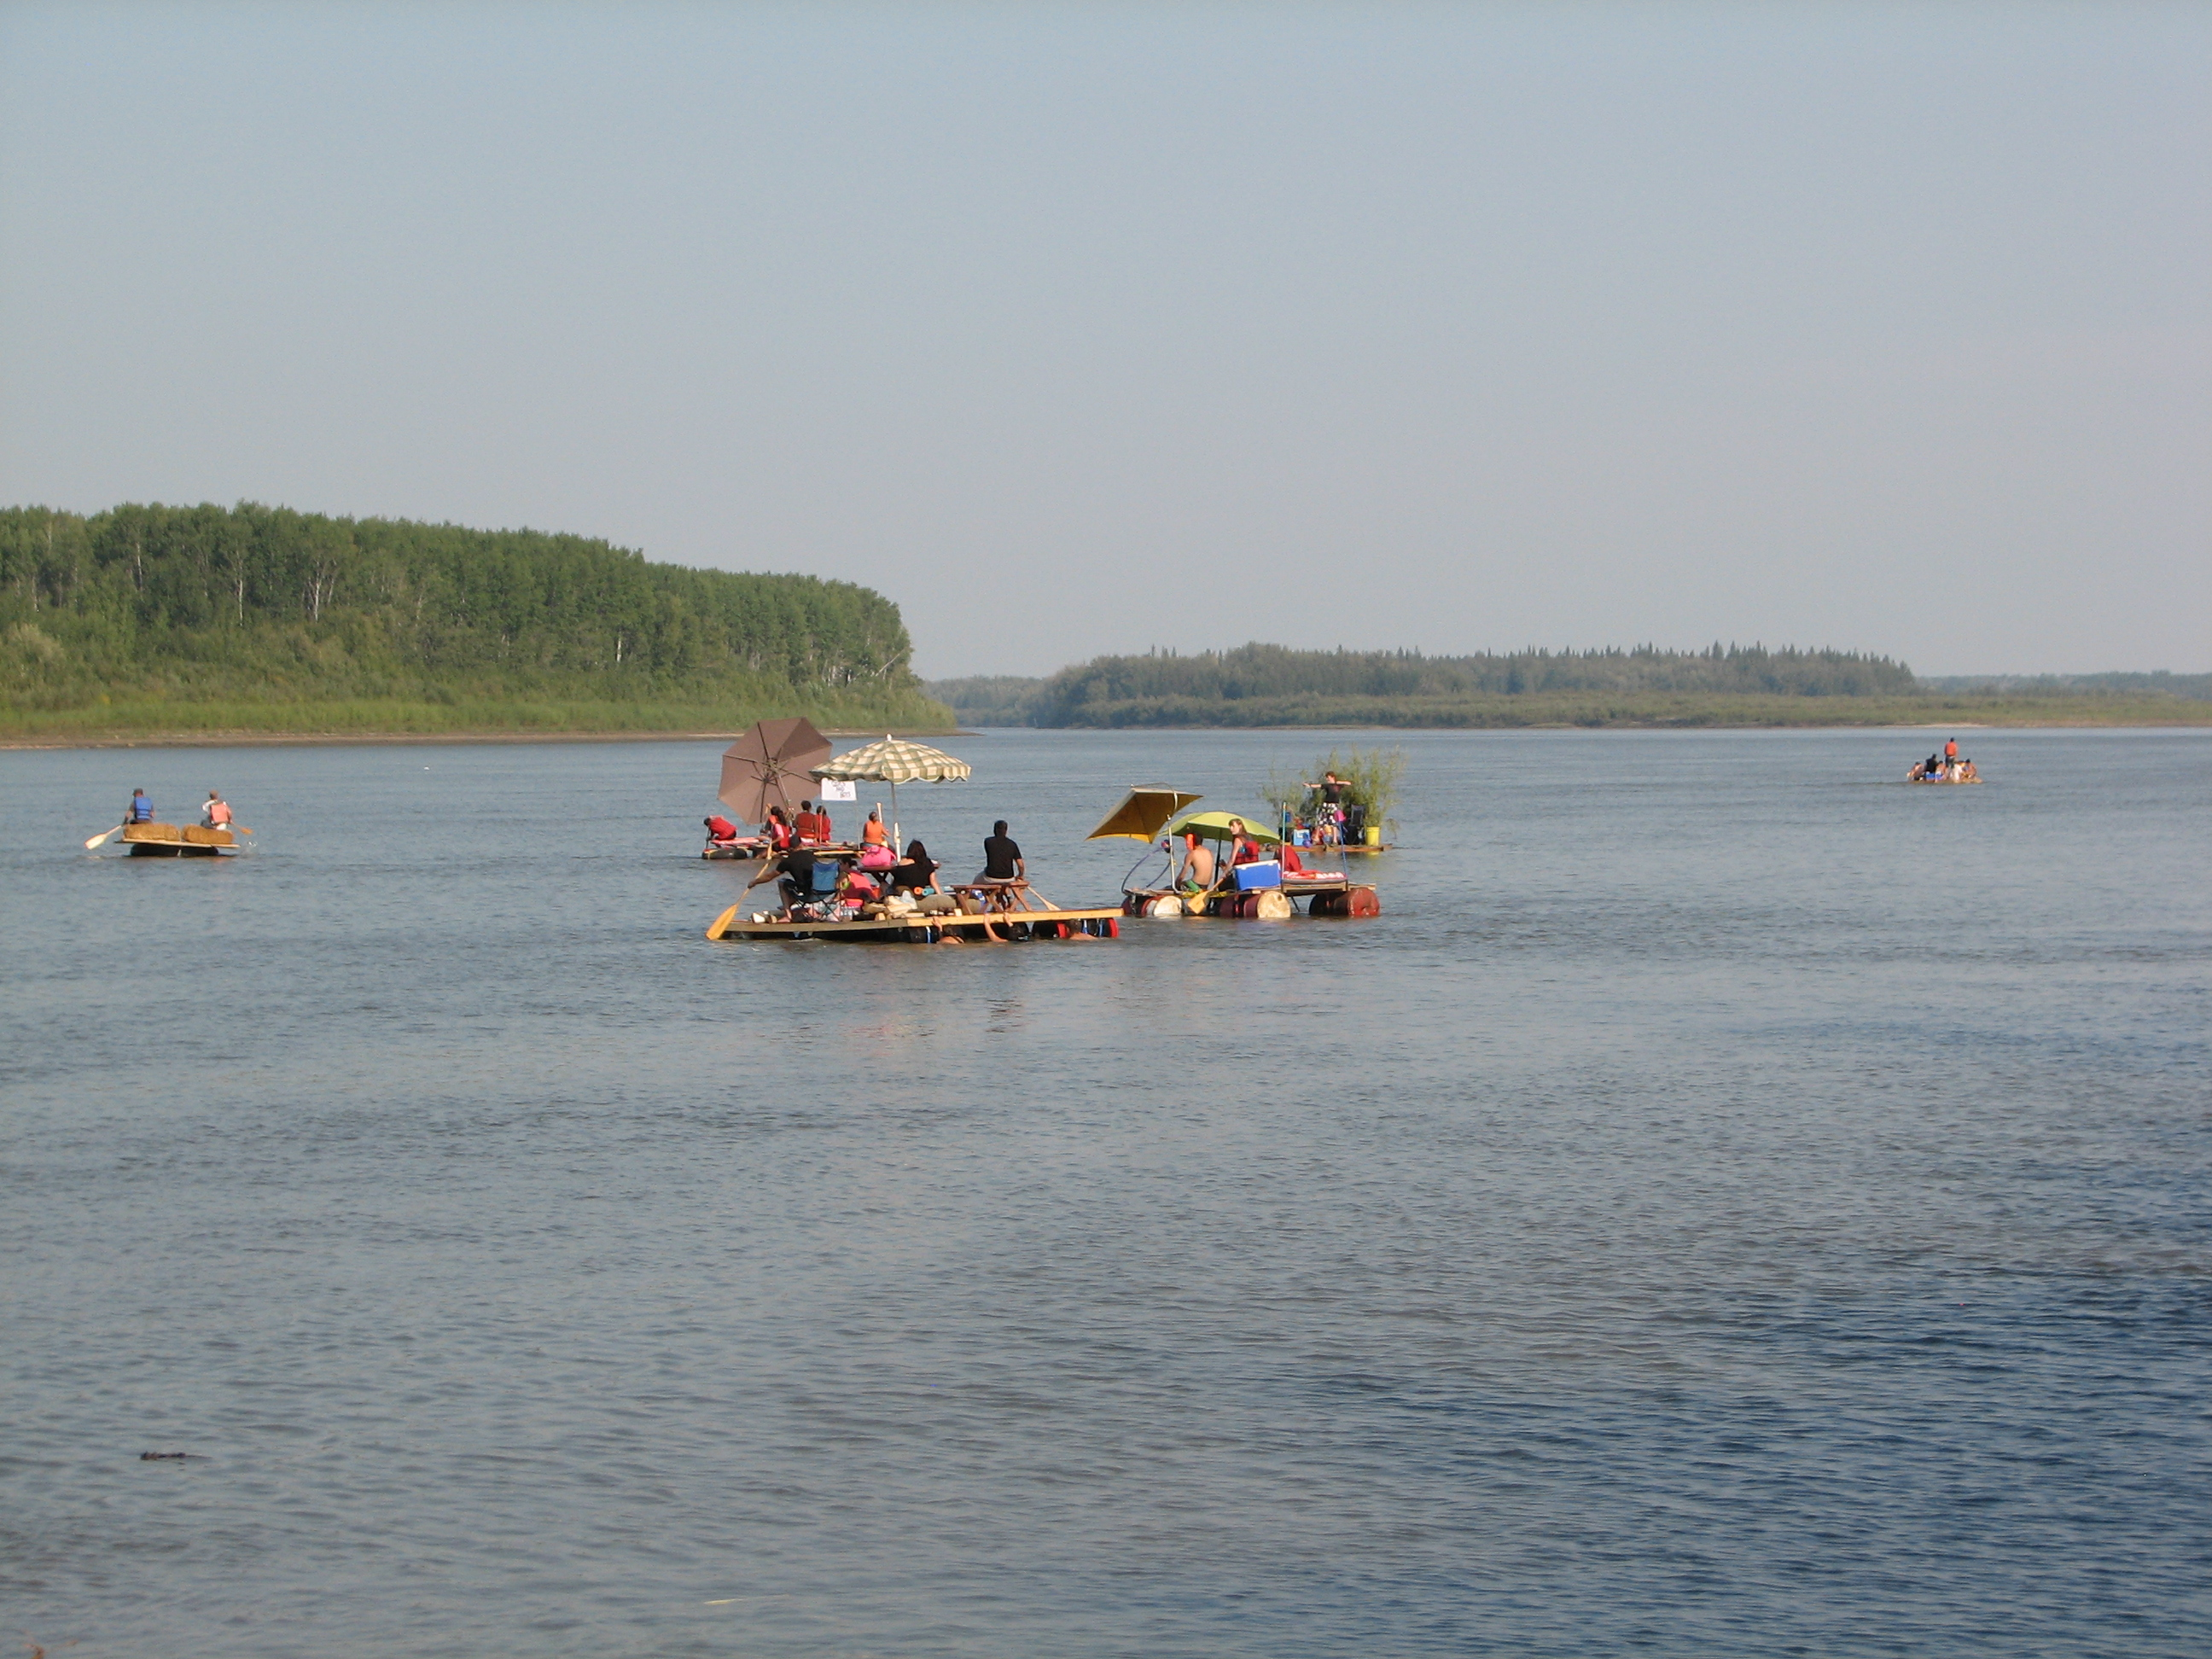 Rafts in the raft race. River days 2012. Photo Credit: Wendy Quist